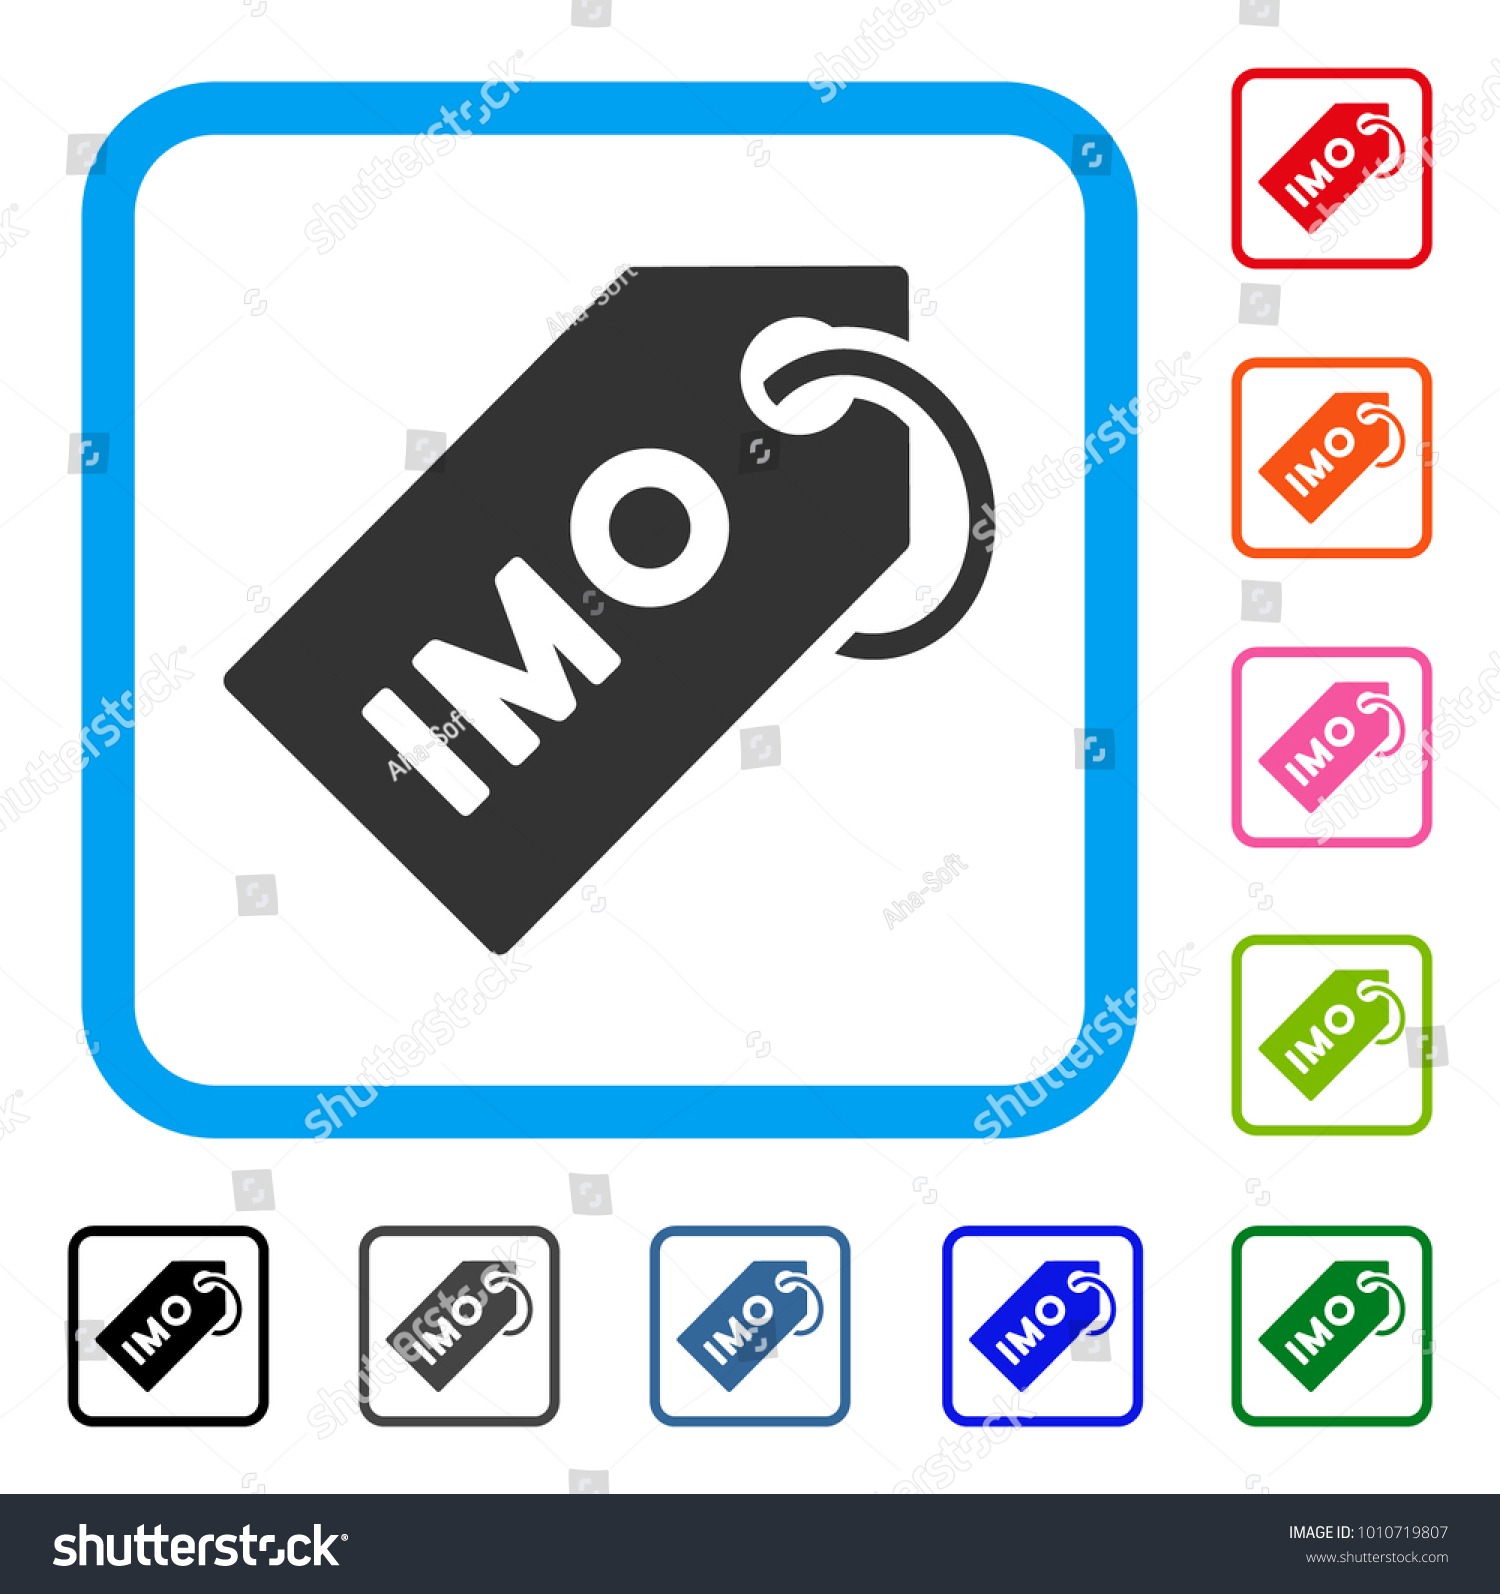 Imo Tag Icon Flat Gray Pictogram Stock Vector Royalty Free